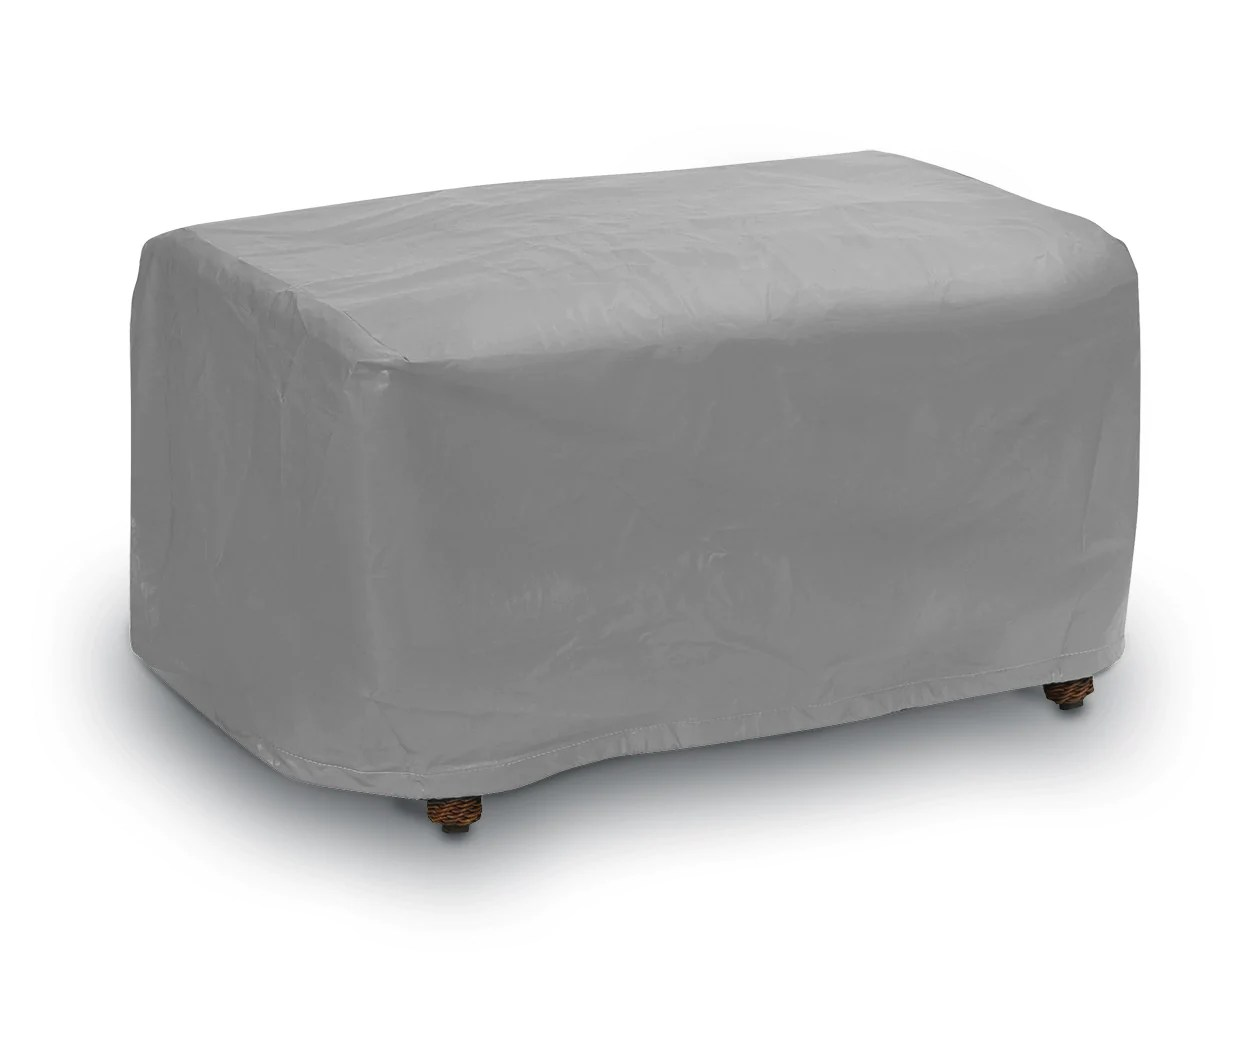 grey patio chair covers used restaurant chairs waterproof outdoor furniture ottoman small cover